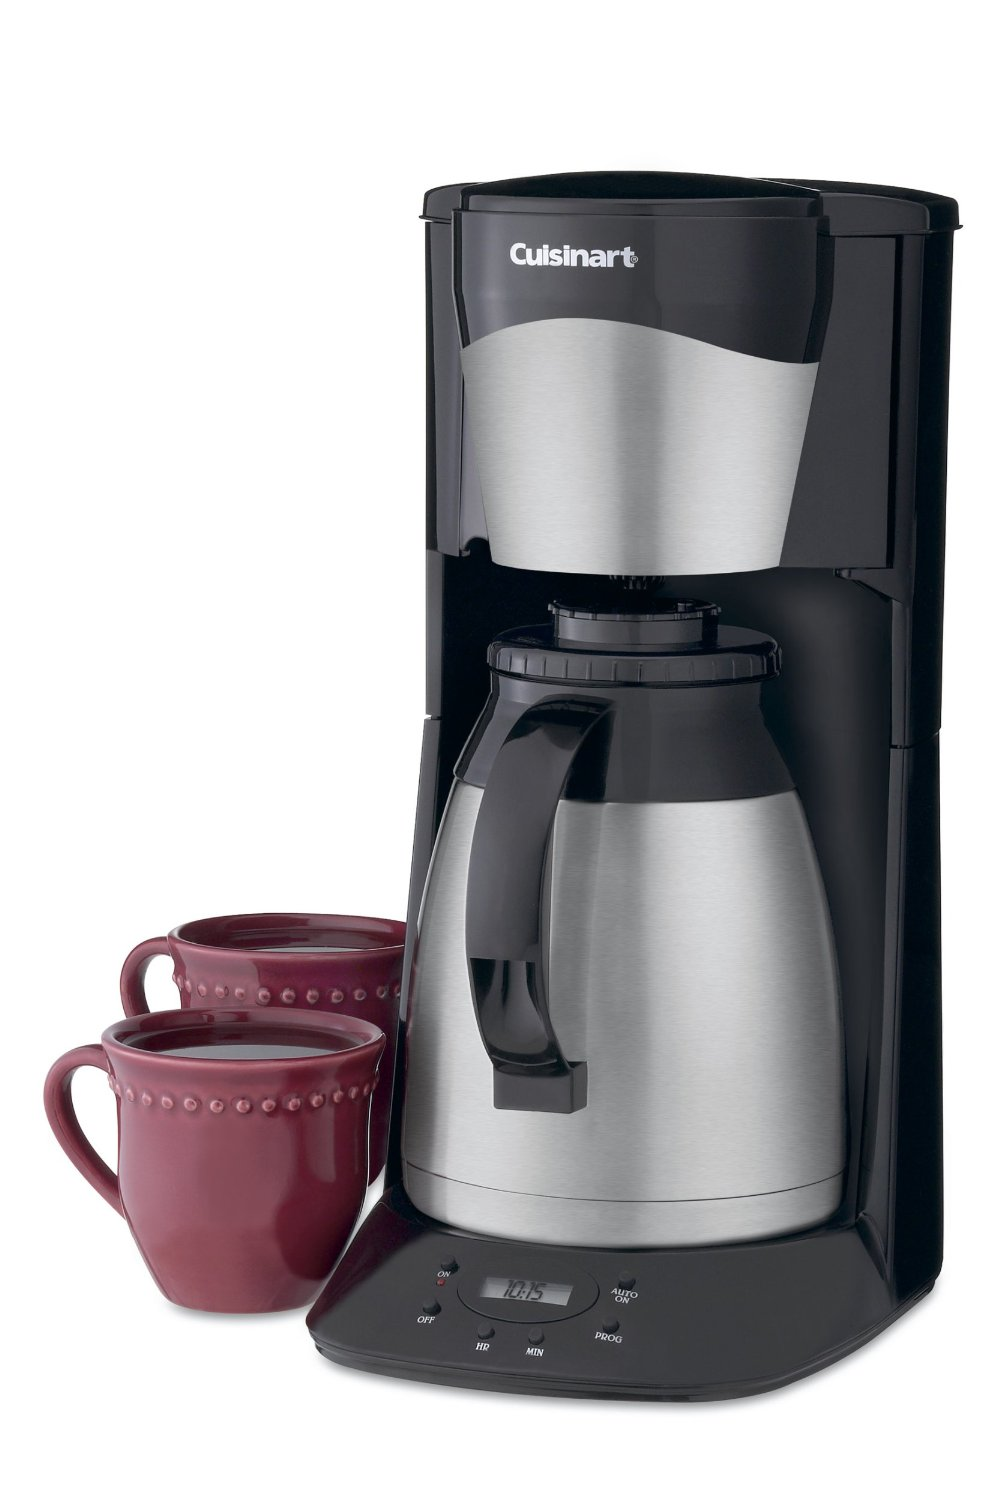 cuisinart dtc 975bkn 12 cup programmable thermal carafe coffee maker. Black Bedroom Furniture Sets. Home Design Ideas